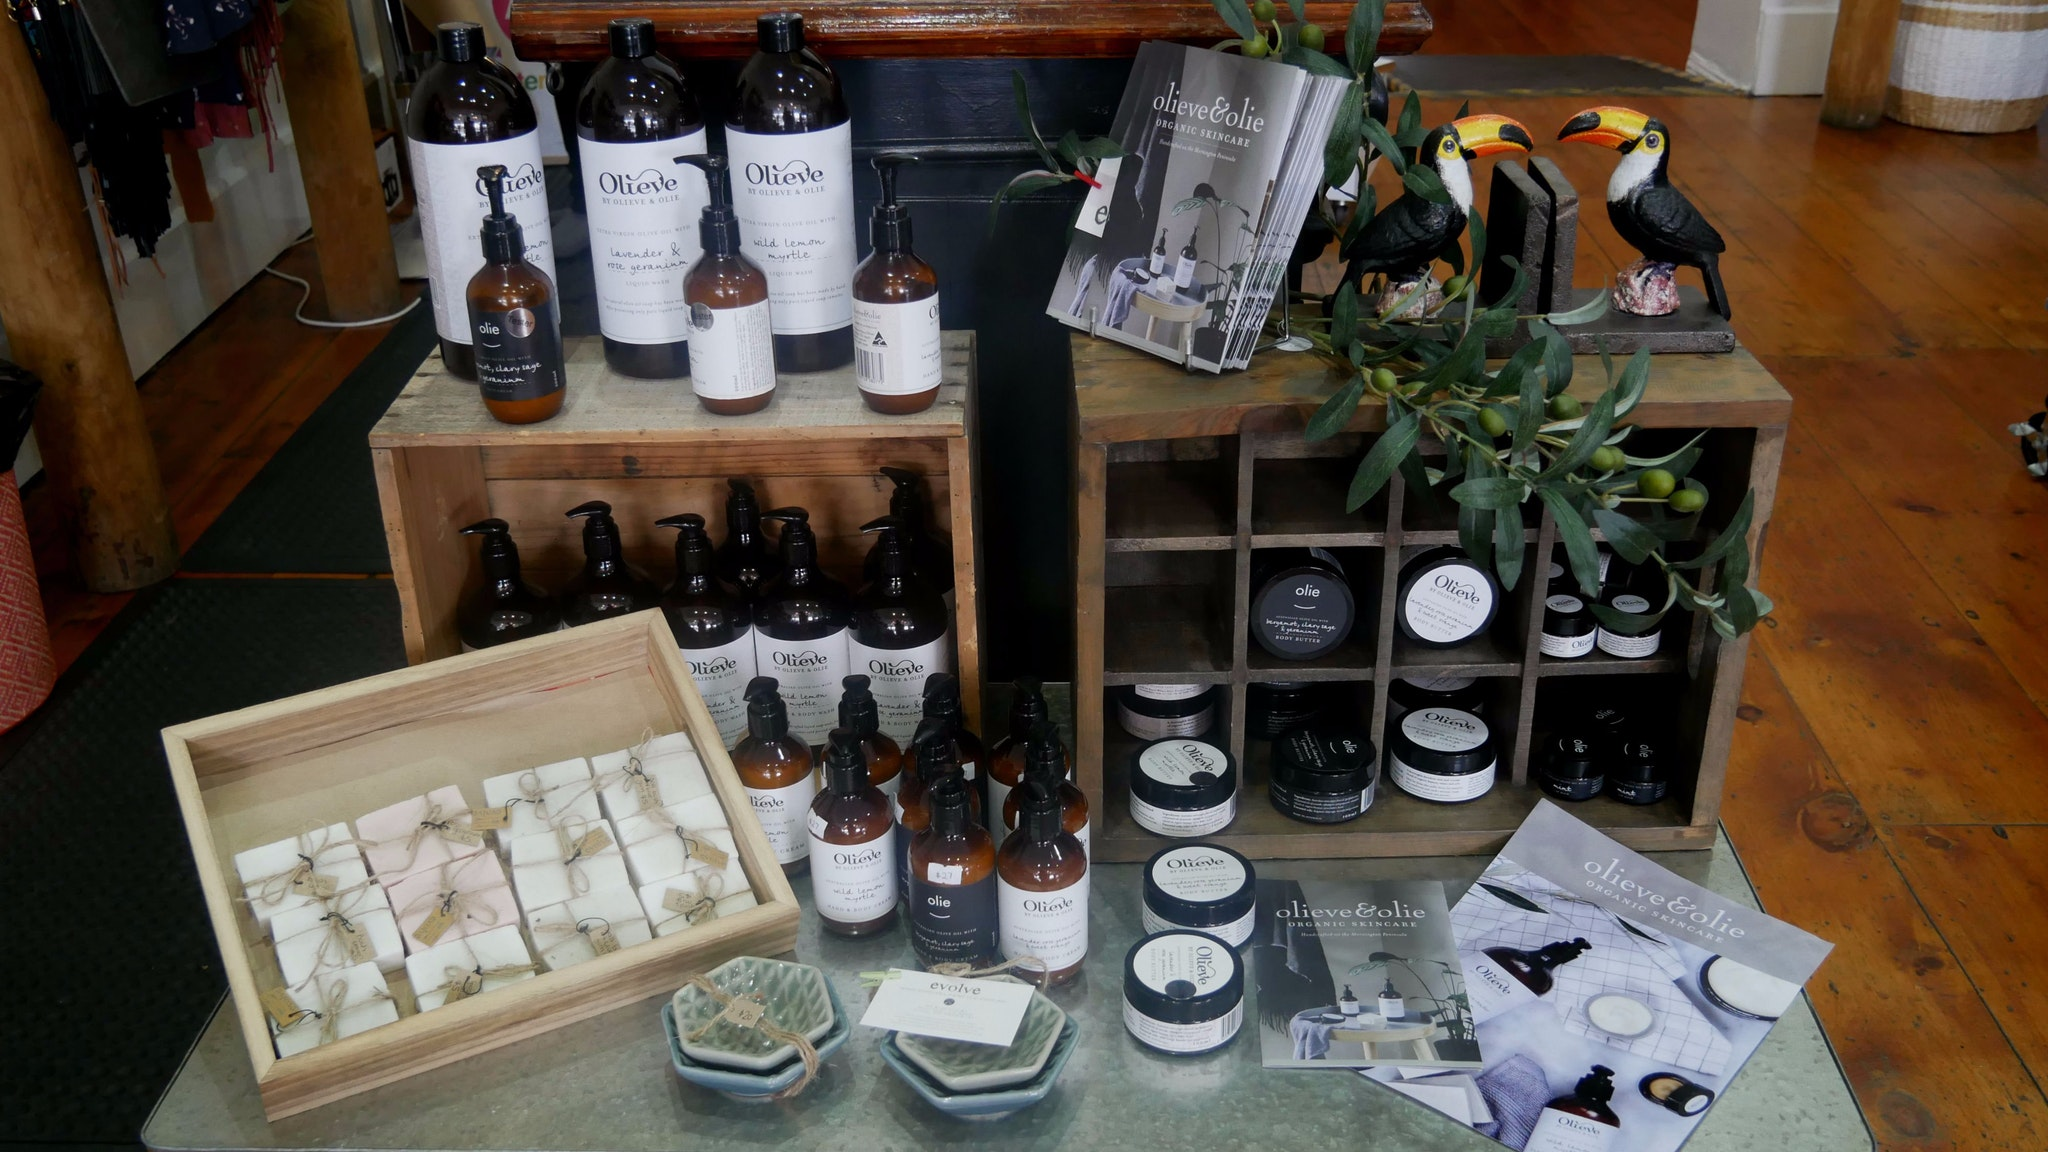 Olieve and Oli skincare and giftware instore